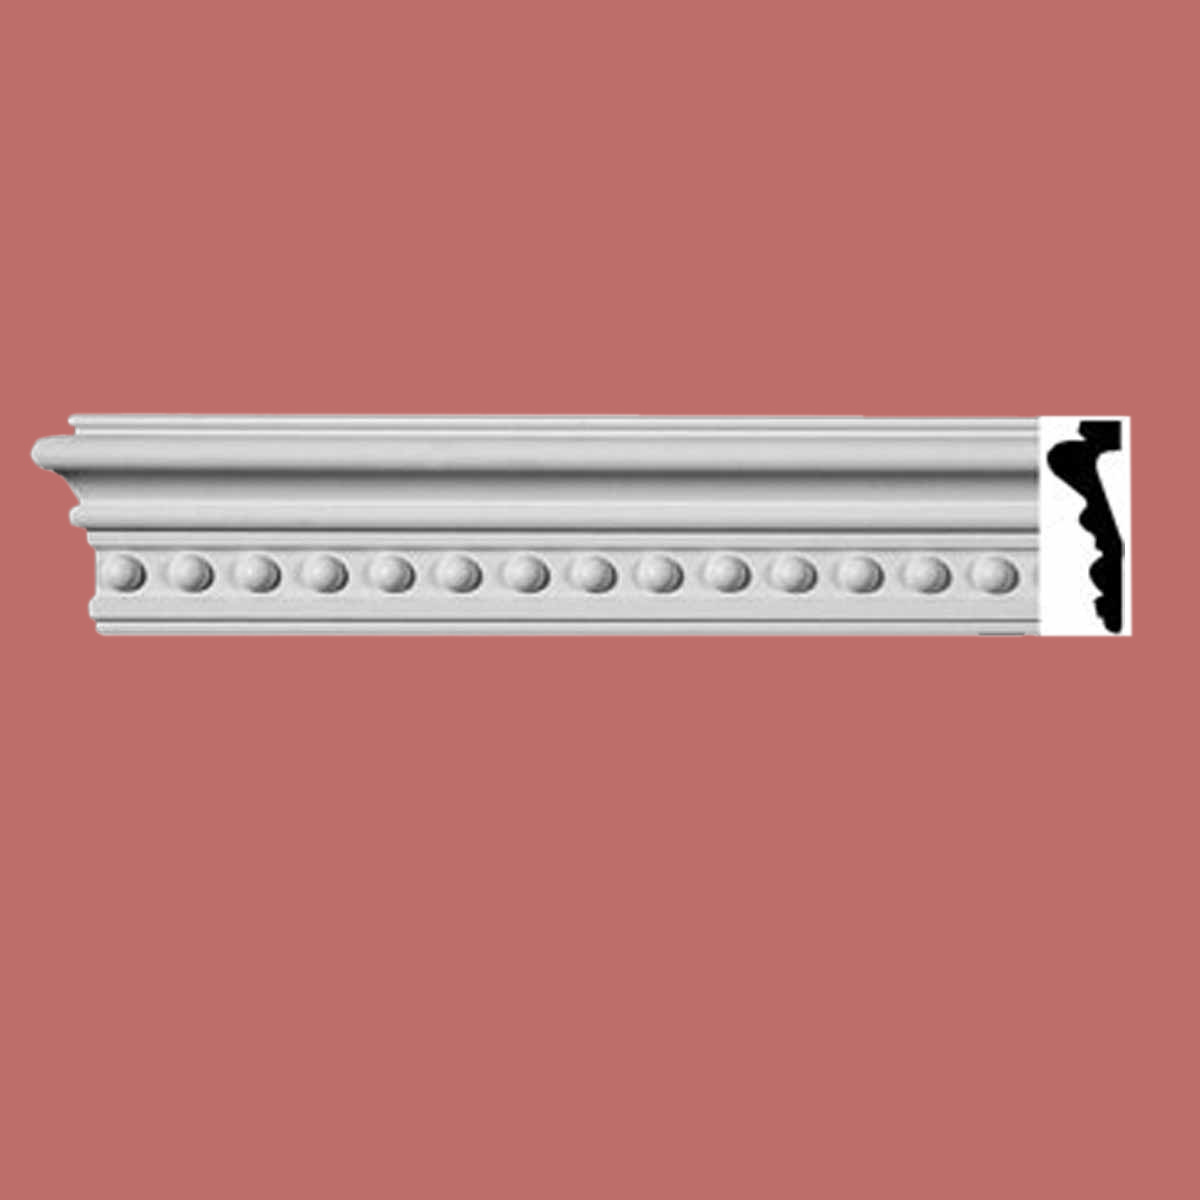 Cornice White Urethane Sample of 11613 24 Long Cornice Cornice Moulding Cornice Molding